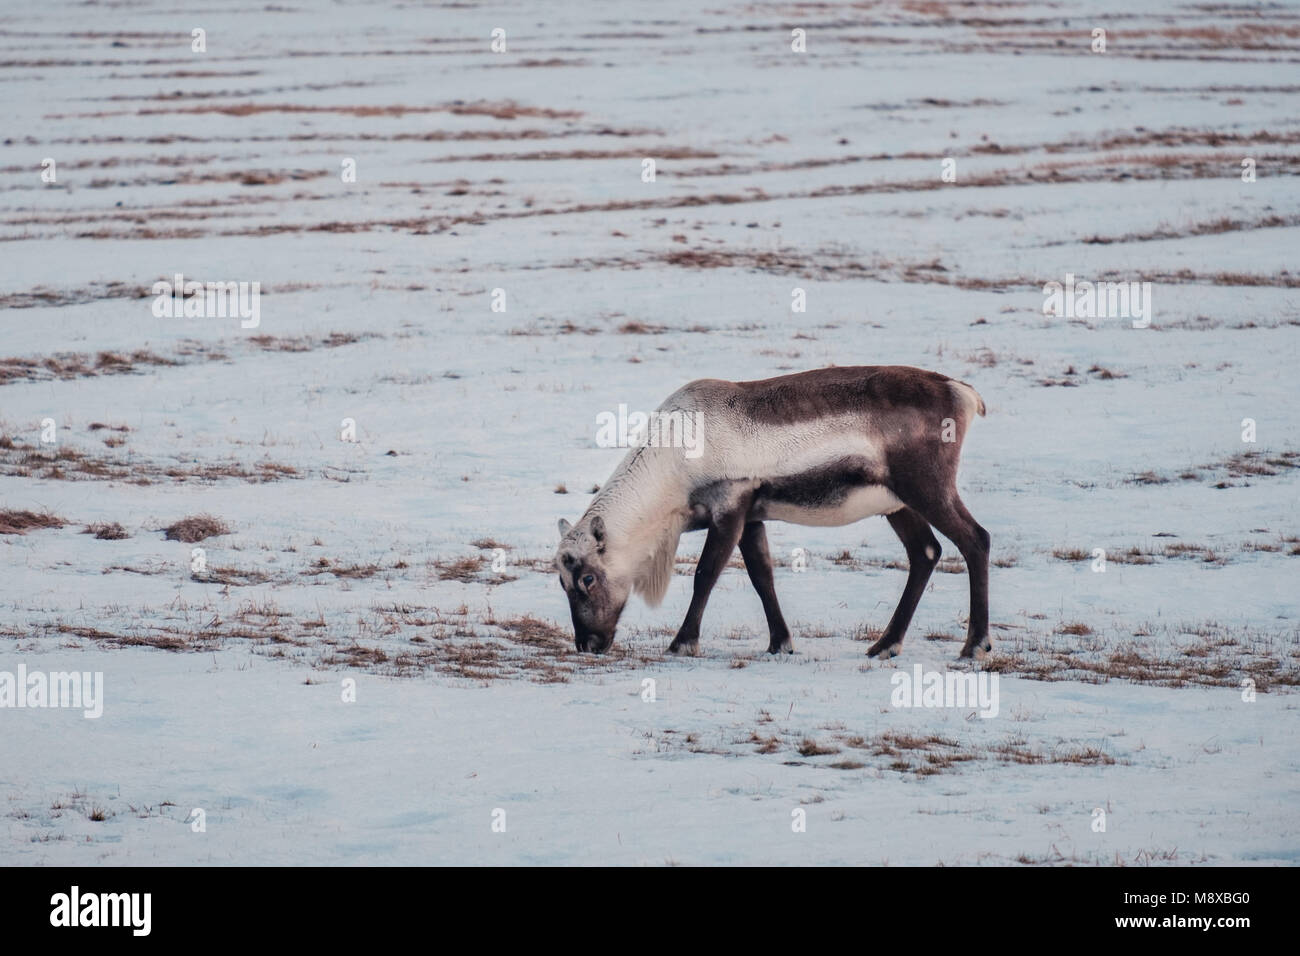 Icelandic reindeer grazing near the Glacier Lagoon in south east Iceland in its natural winter environment. Stock Photo